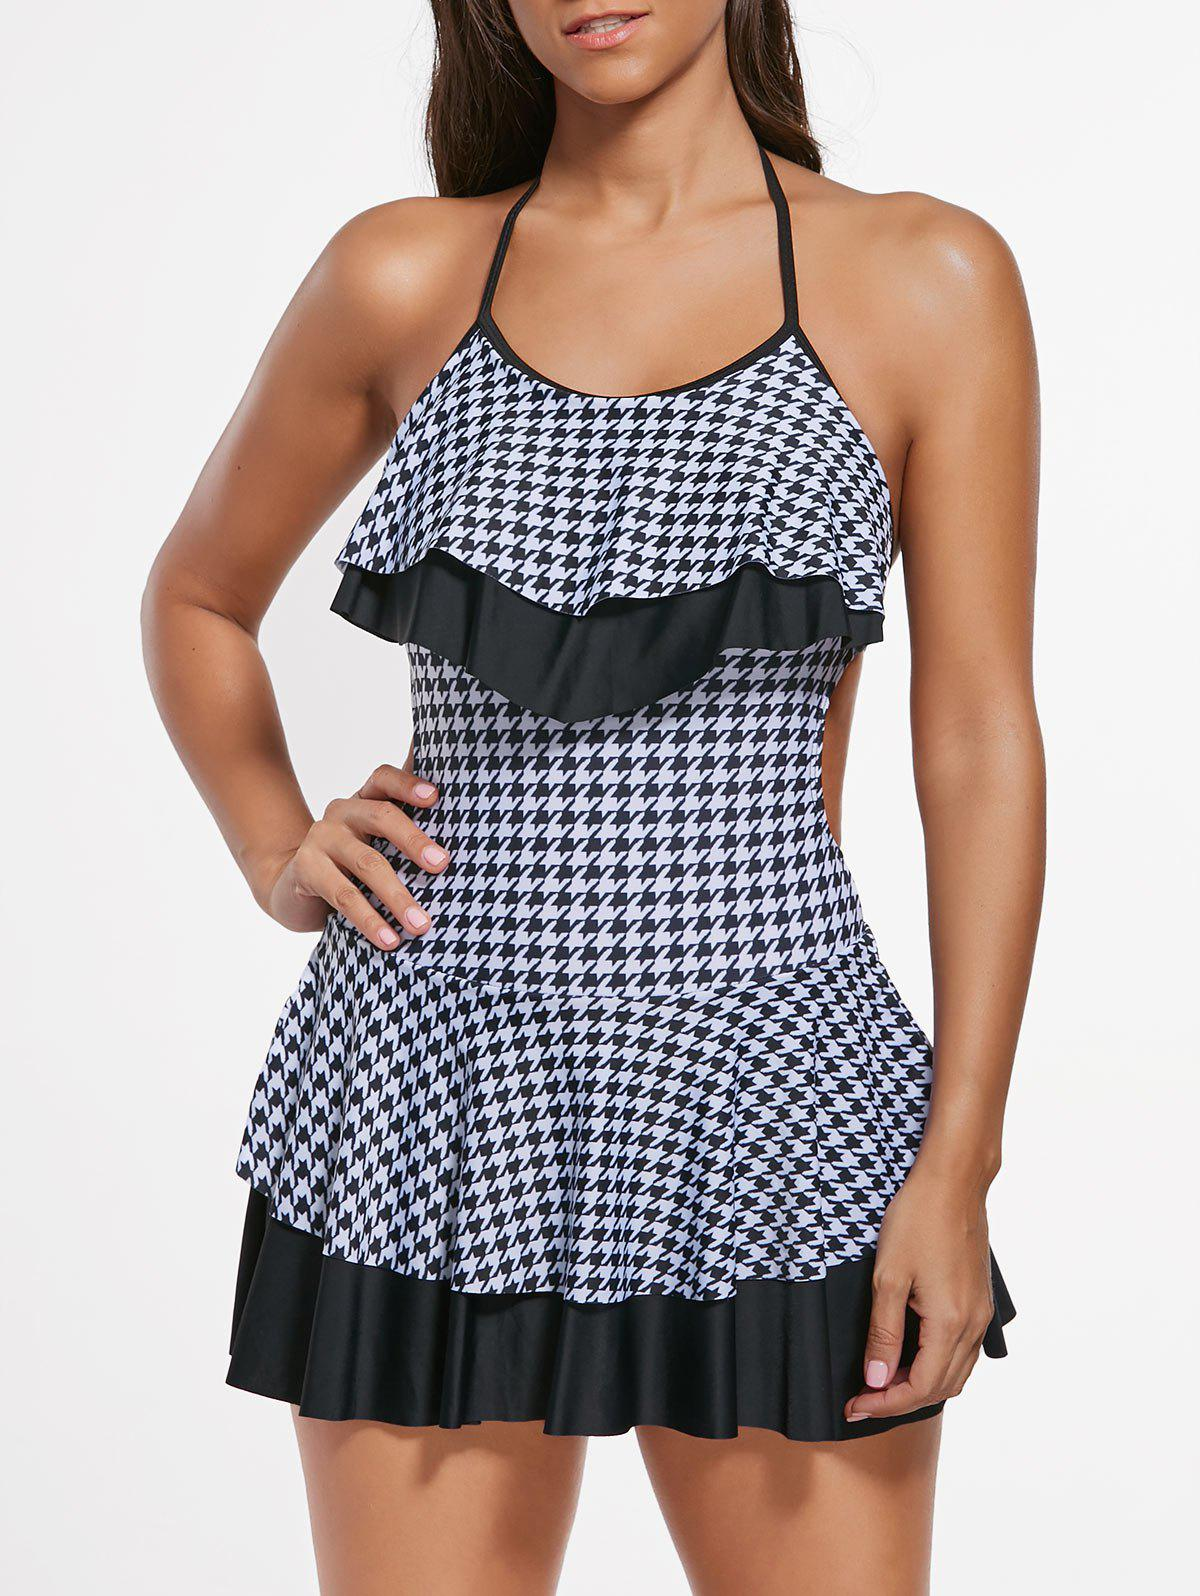 Houndstooth Flounce Skirted Swimsuit - Blanc et Noir L